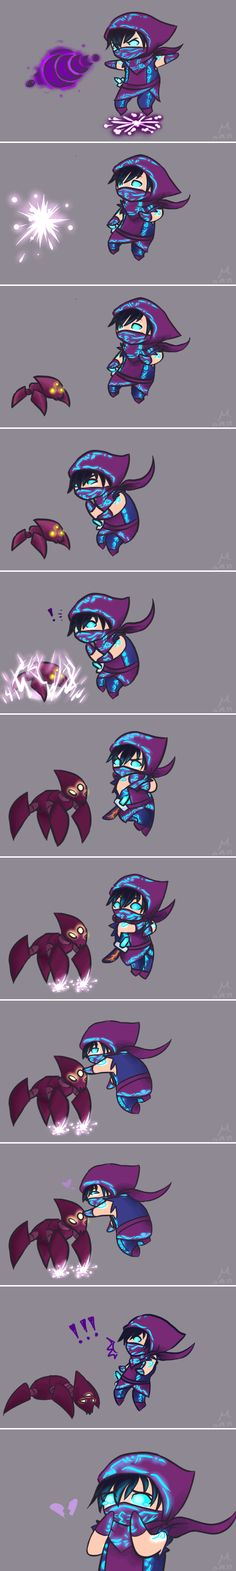 Just a Thought. by Mot-Mithra on deviantART -- Awww, I do hate it when Malzahar's little voidlings run out of time and die.  It's so pathetic.